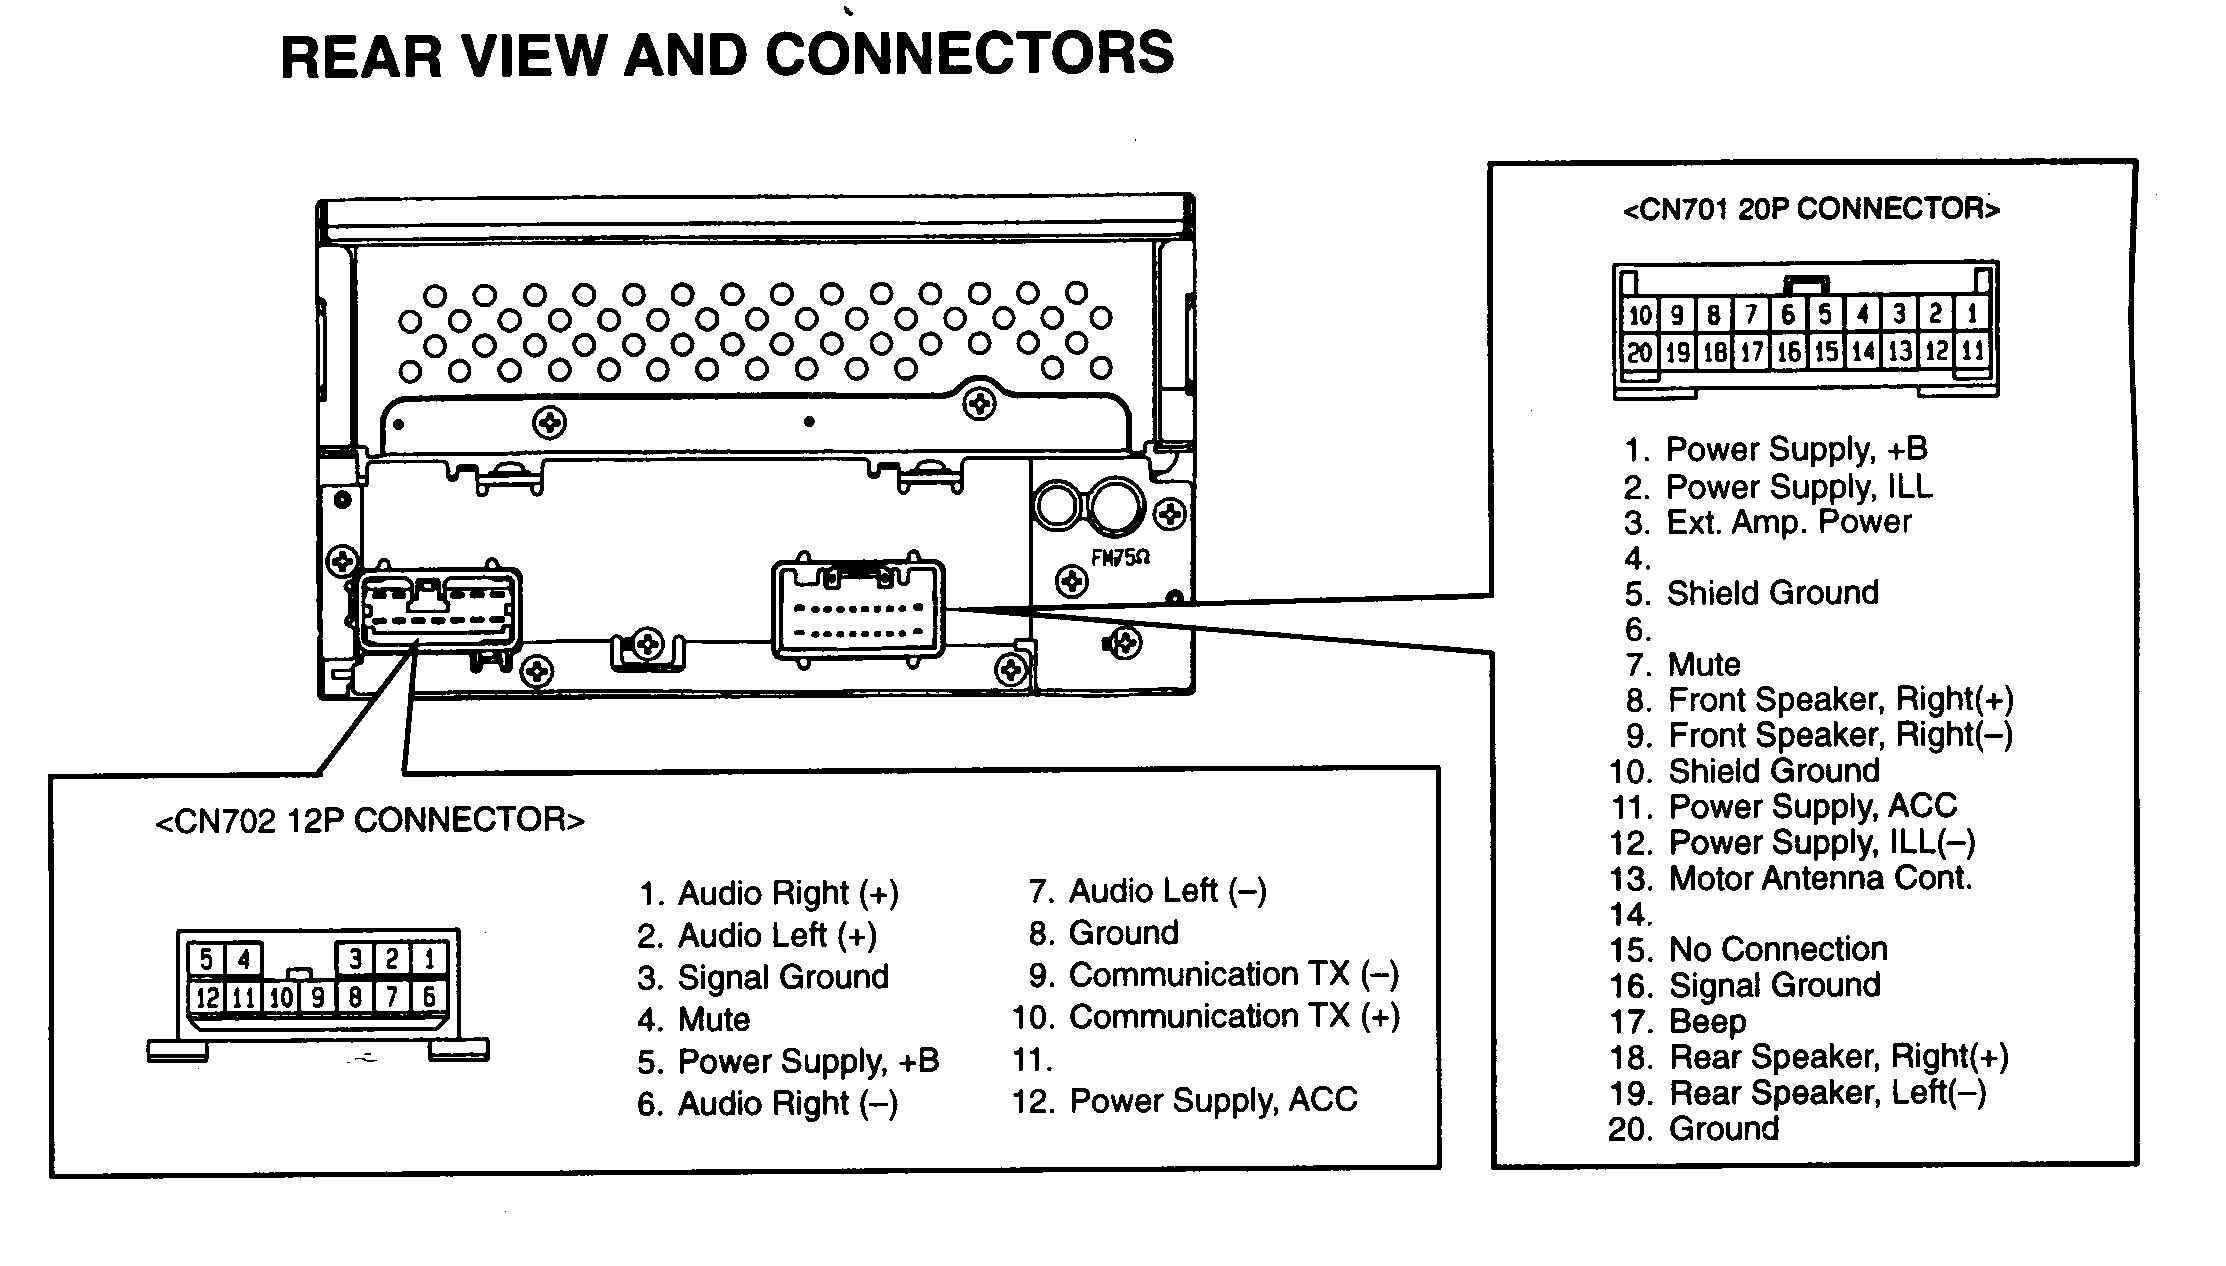 bose black acoustimass wiring diagram Bose Link Connector